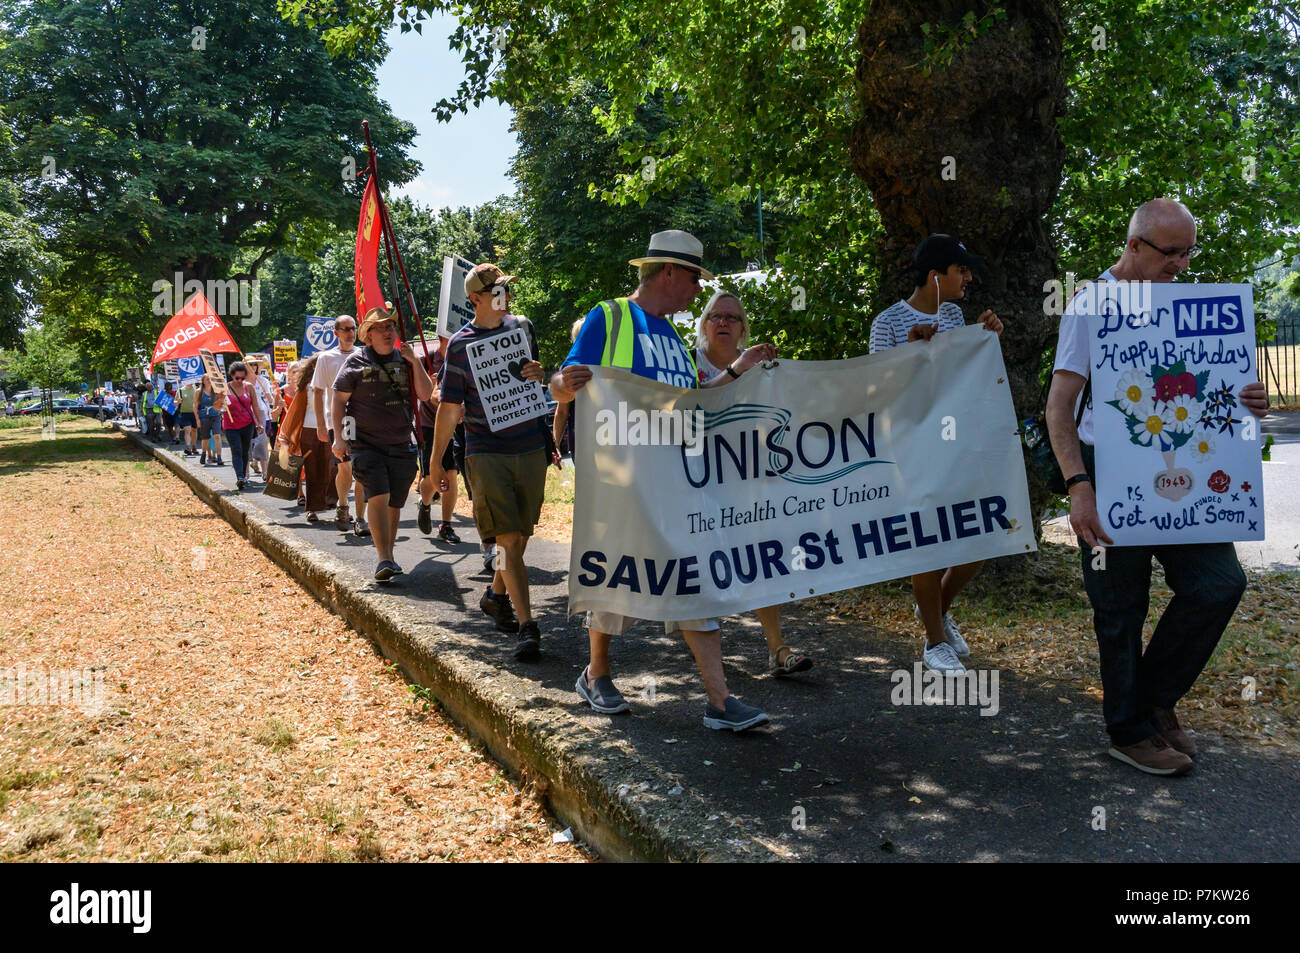 London, UK. 7th July 2018. Keep Our St Helier Hospital (KOSHH) campaigners against the closure of acute facilities at Epsom and St Helier Hospitals in south London celebrate the 70th Birthday of the NHS with a march from Sutton to a rally in front of St Helier Hospital.   he of sou Credit: Peter Marshall/Alamy Live NewsStock Photo